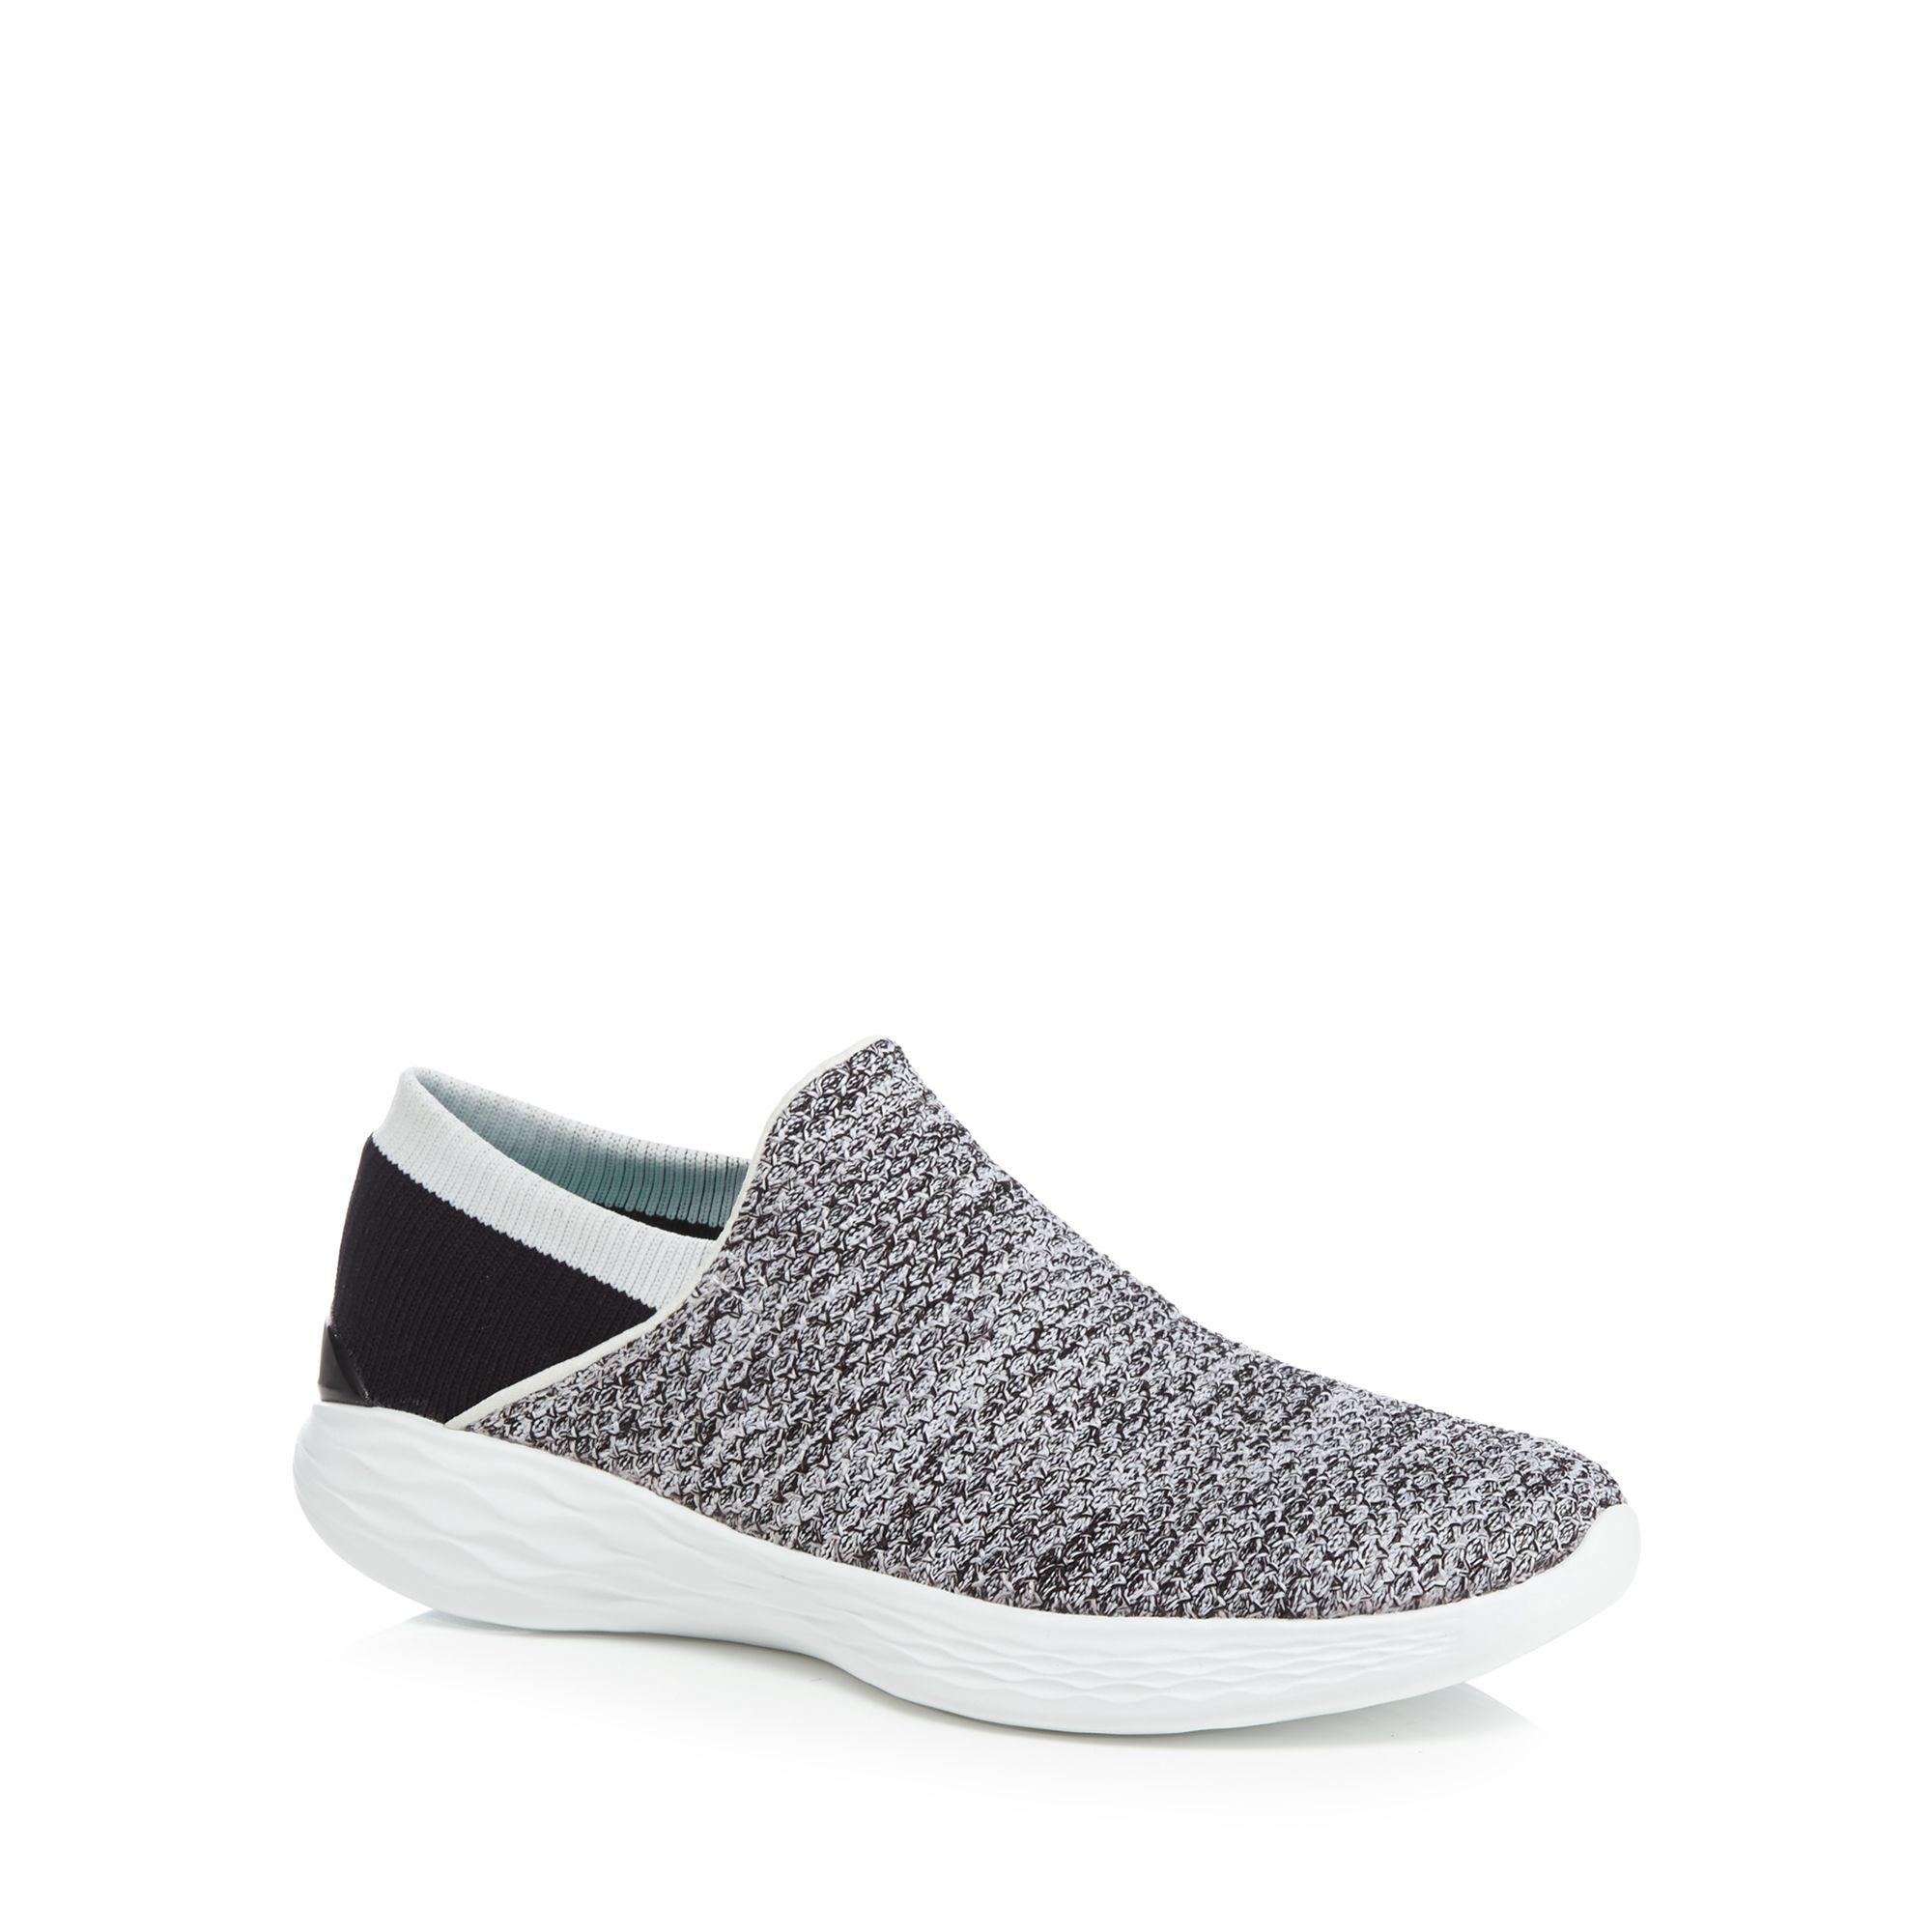 cheap sale sast outlet shop Silver 'You' slip-on trainers cheap big discount free shipping nicekicks outlet shop offer 1qljf